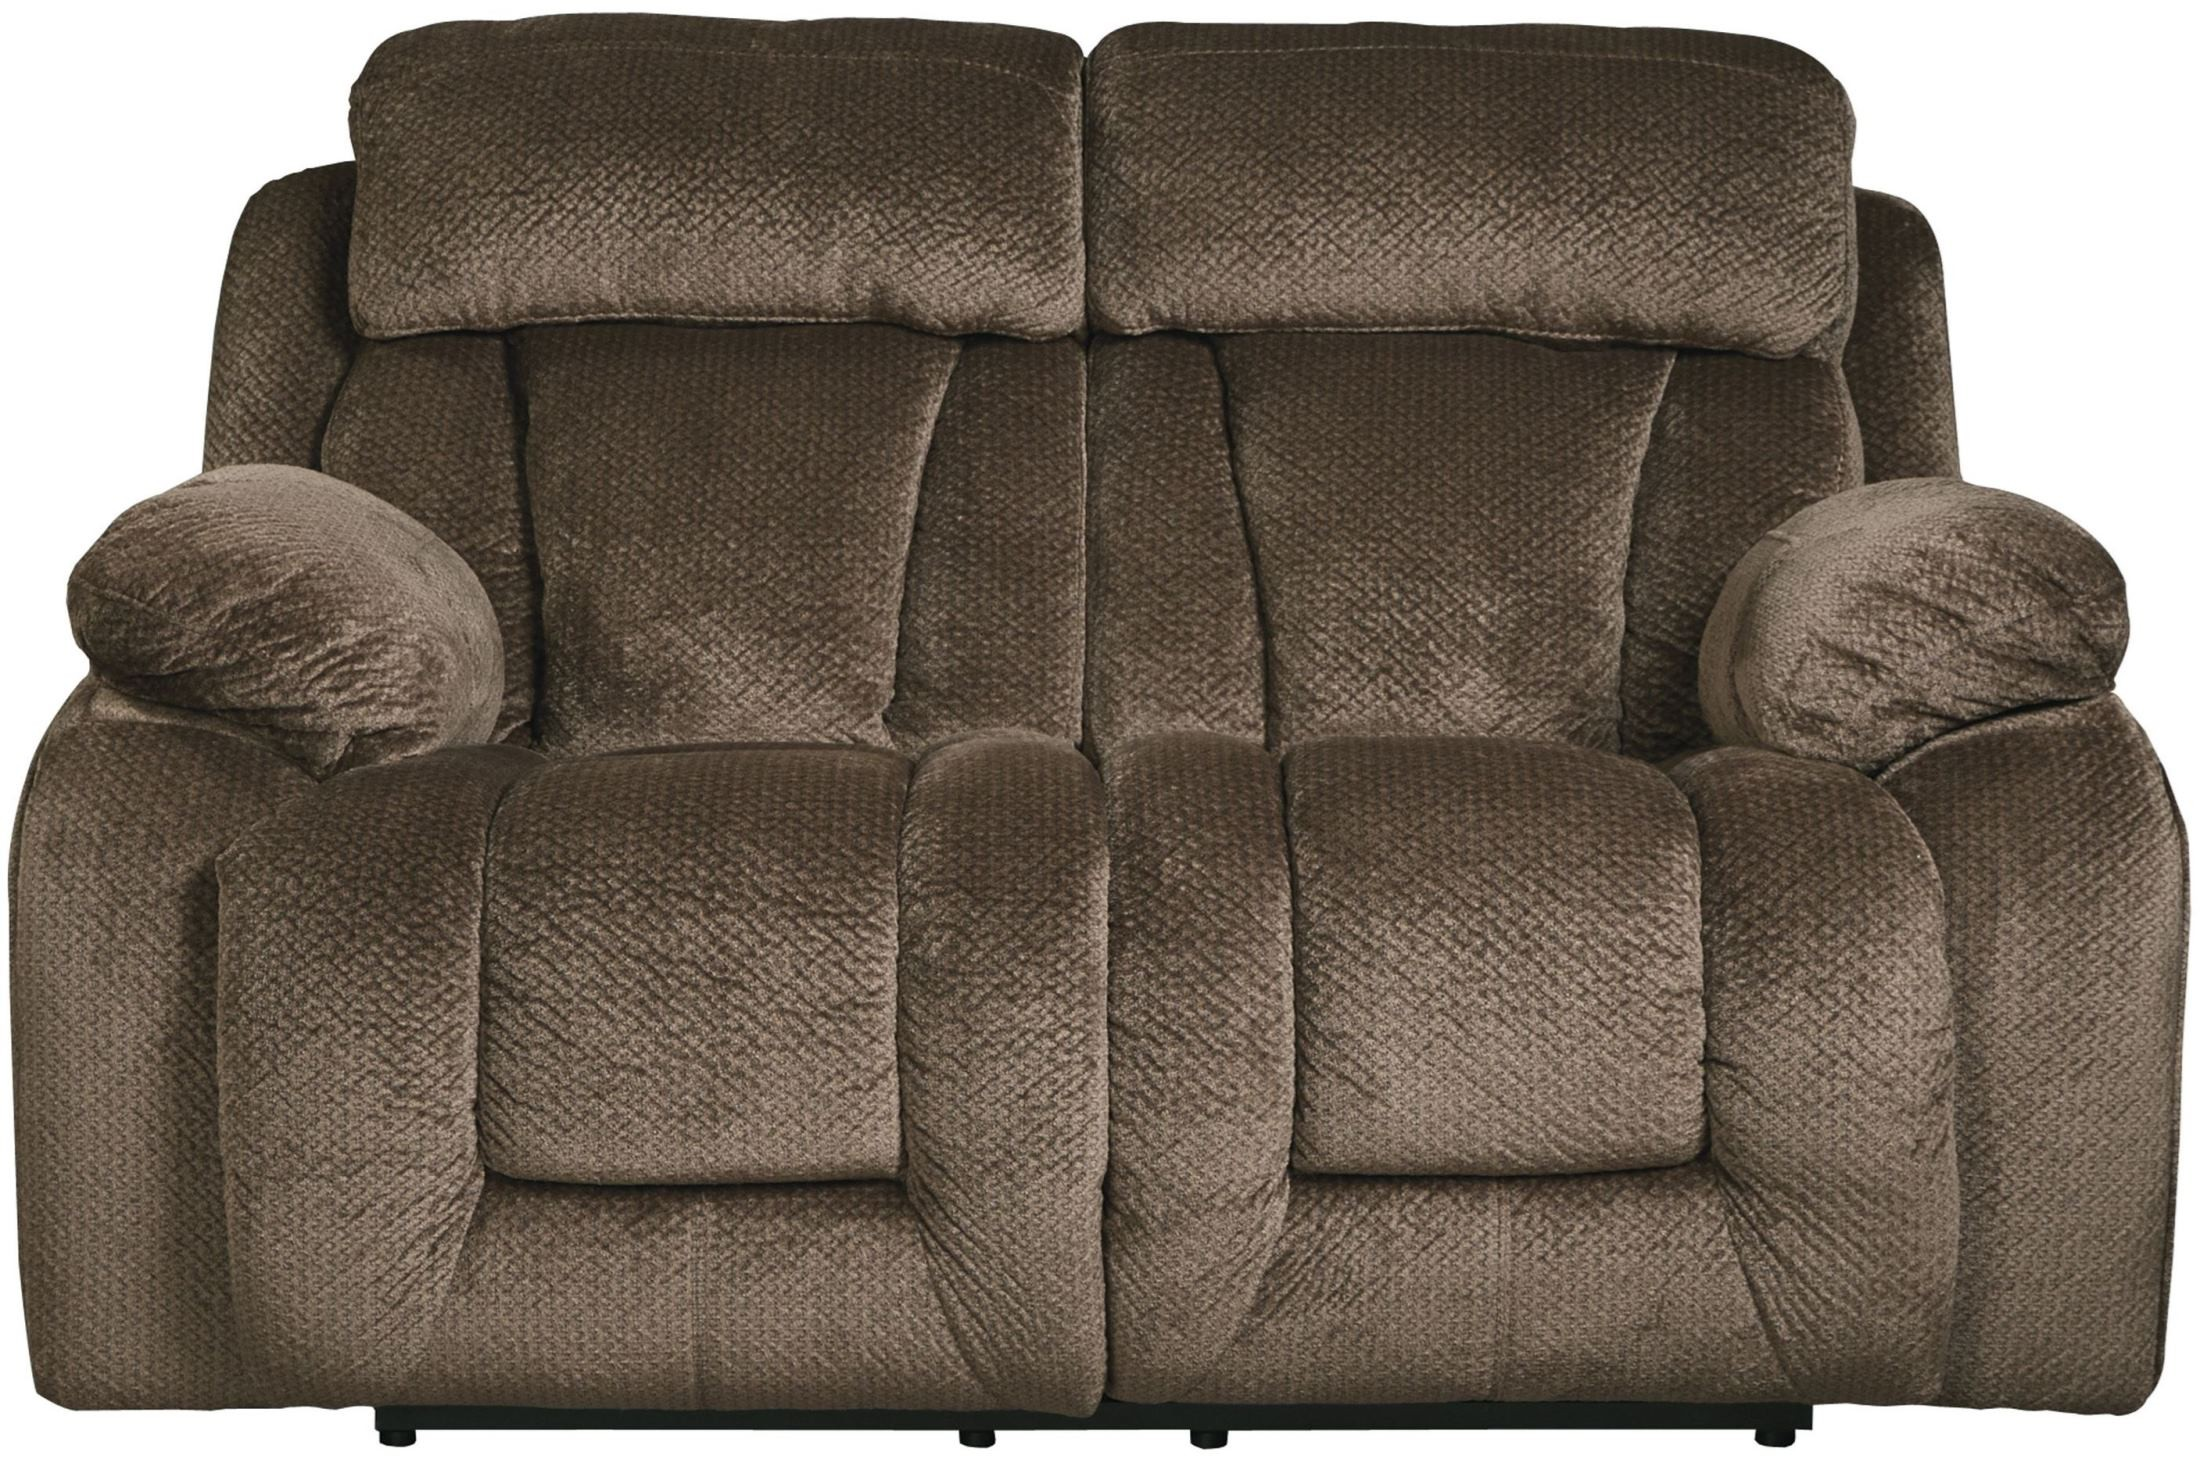 Stricklin Brown Reclining Loveseat From Ashley 8650386 Coleman Furniture